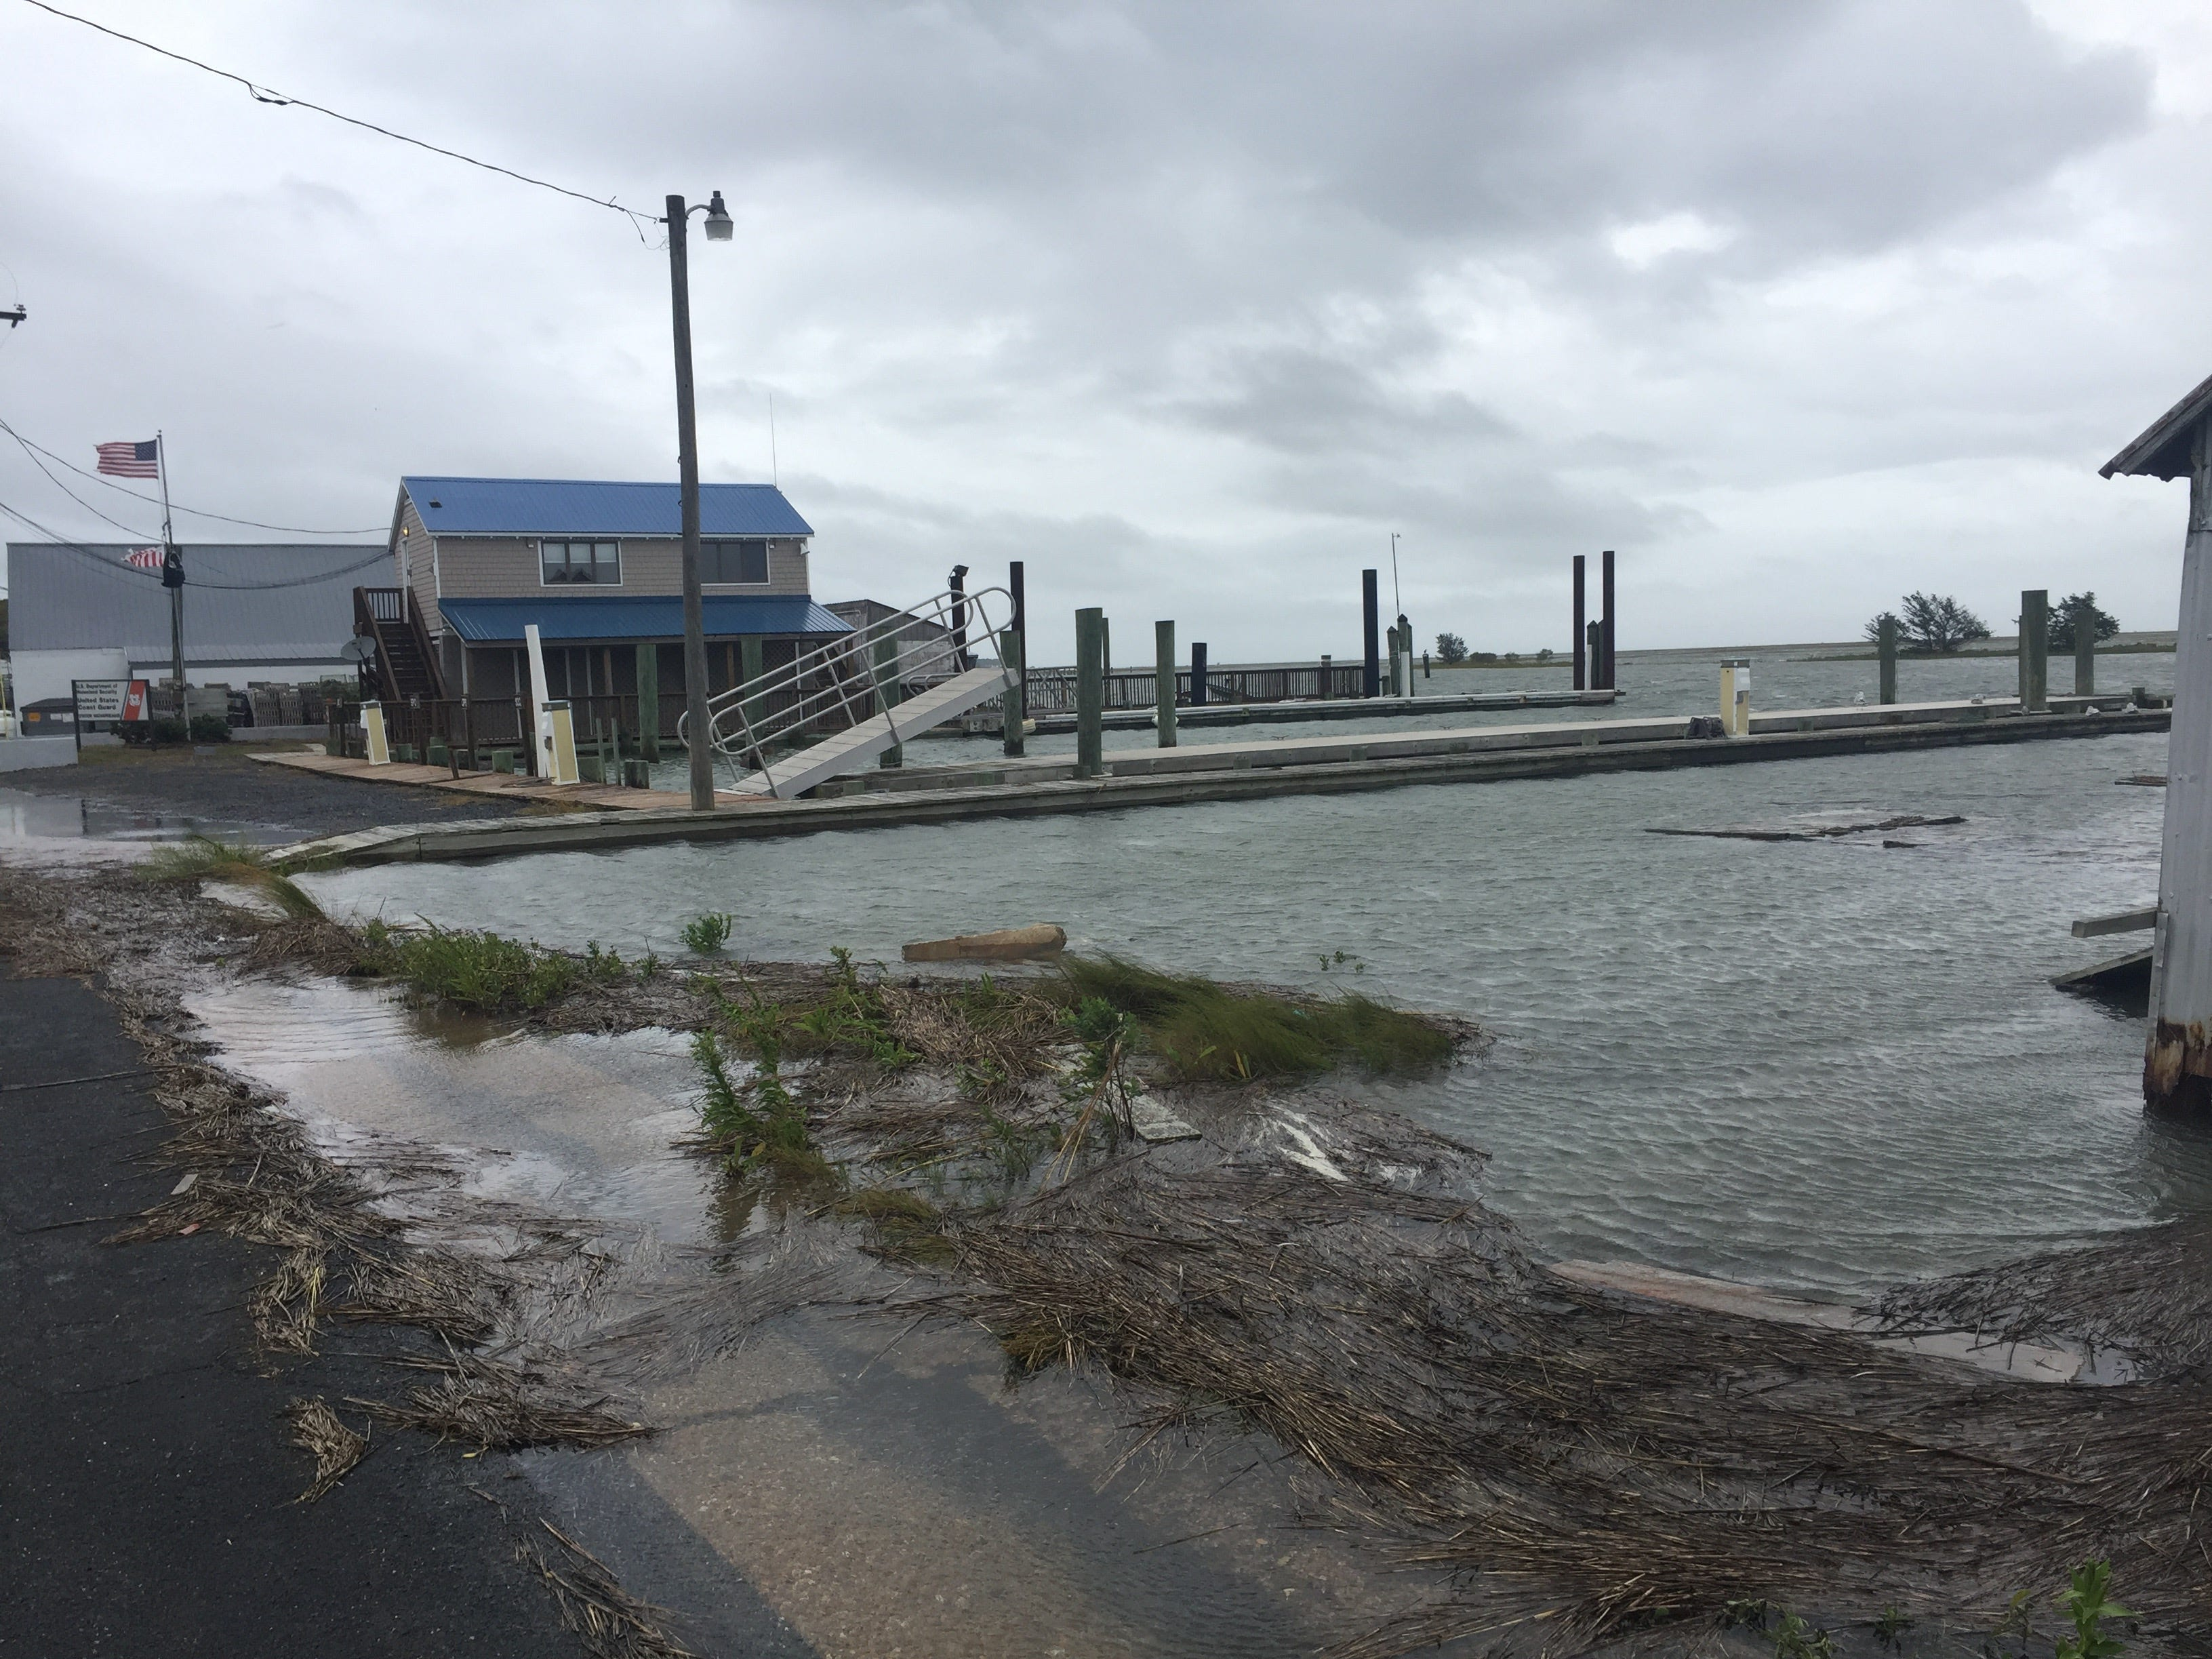 Wachapreague, Virginia experiences minor coastal flooding during high tide Friday, Sept. 14, 2018 as result of Hurricane Florence.